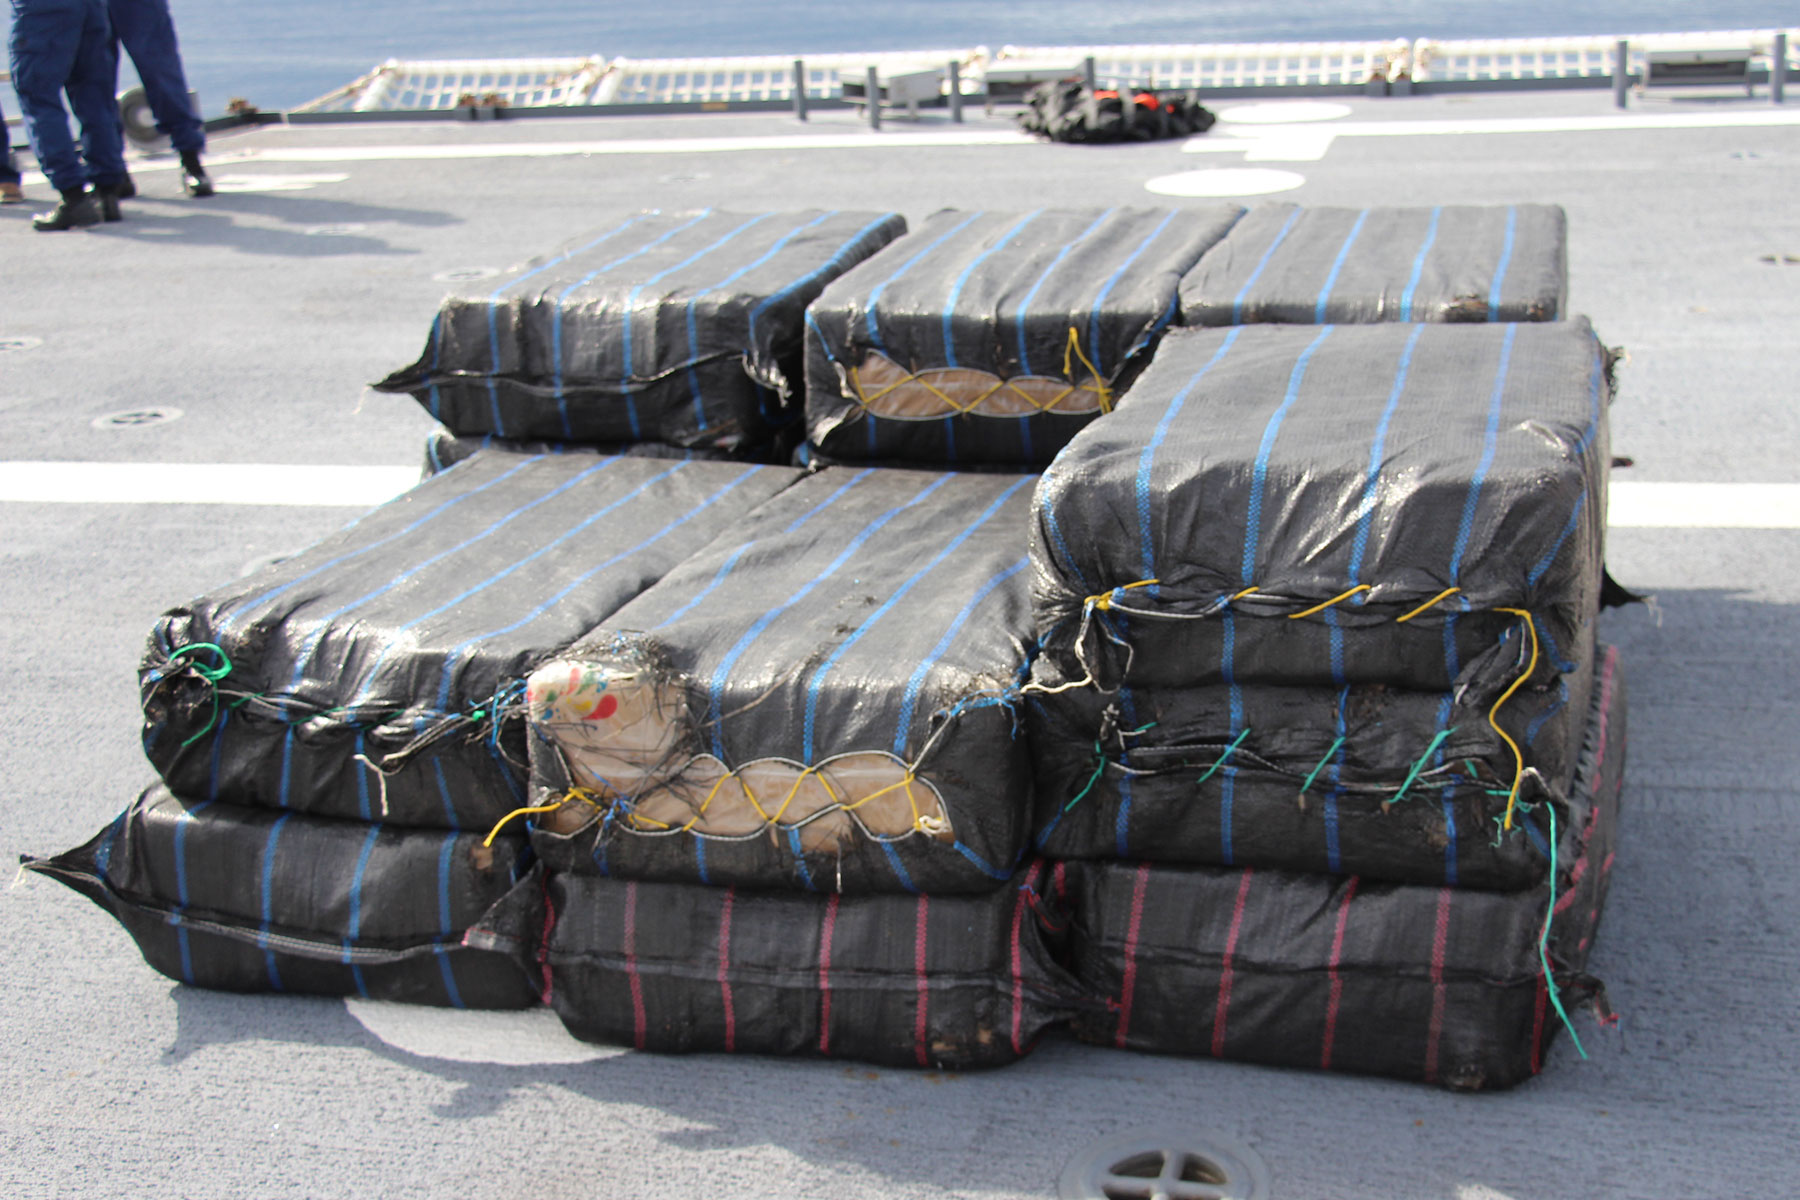 Coast Guard Offloading 6 Tons of Cocaine at Port Everglades